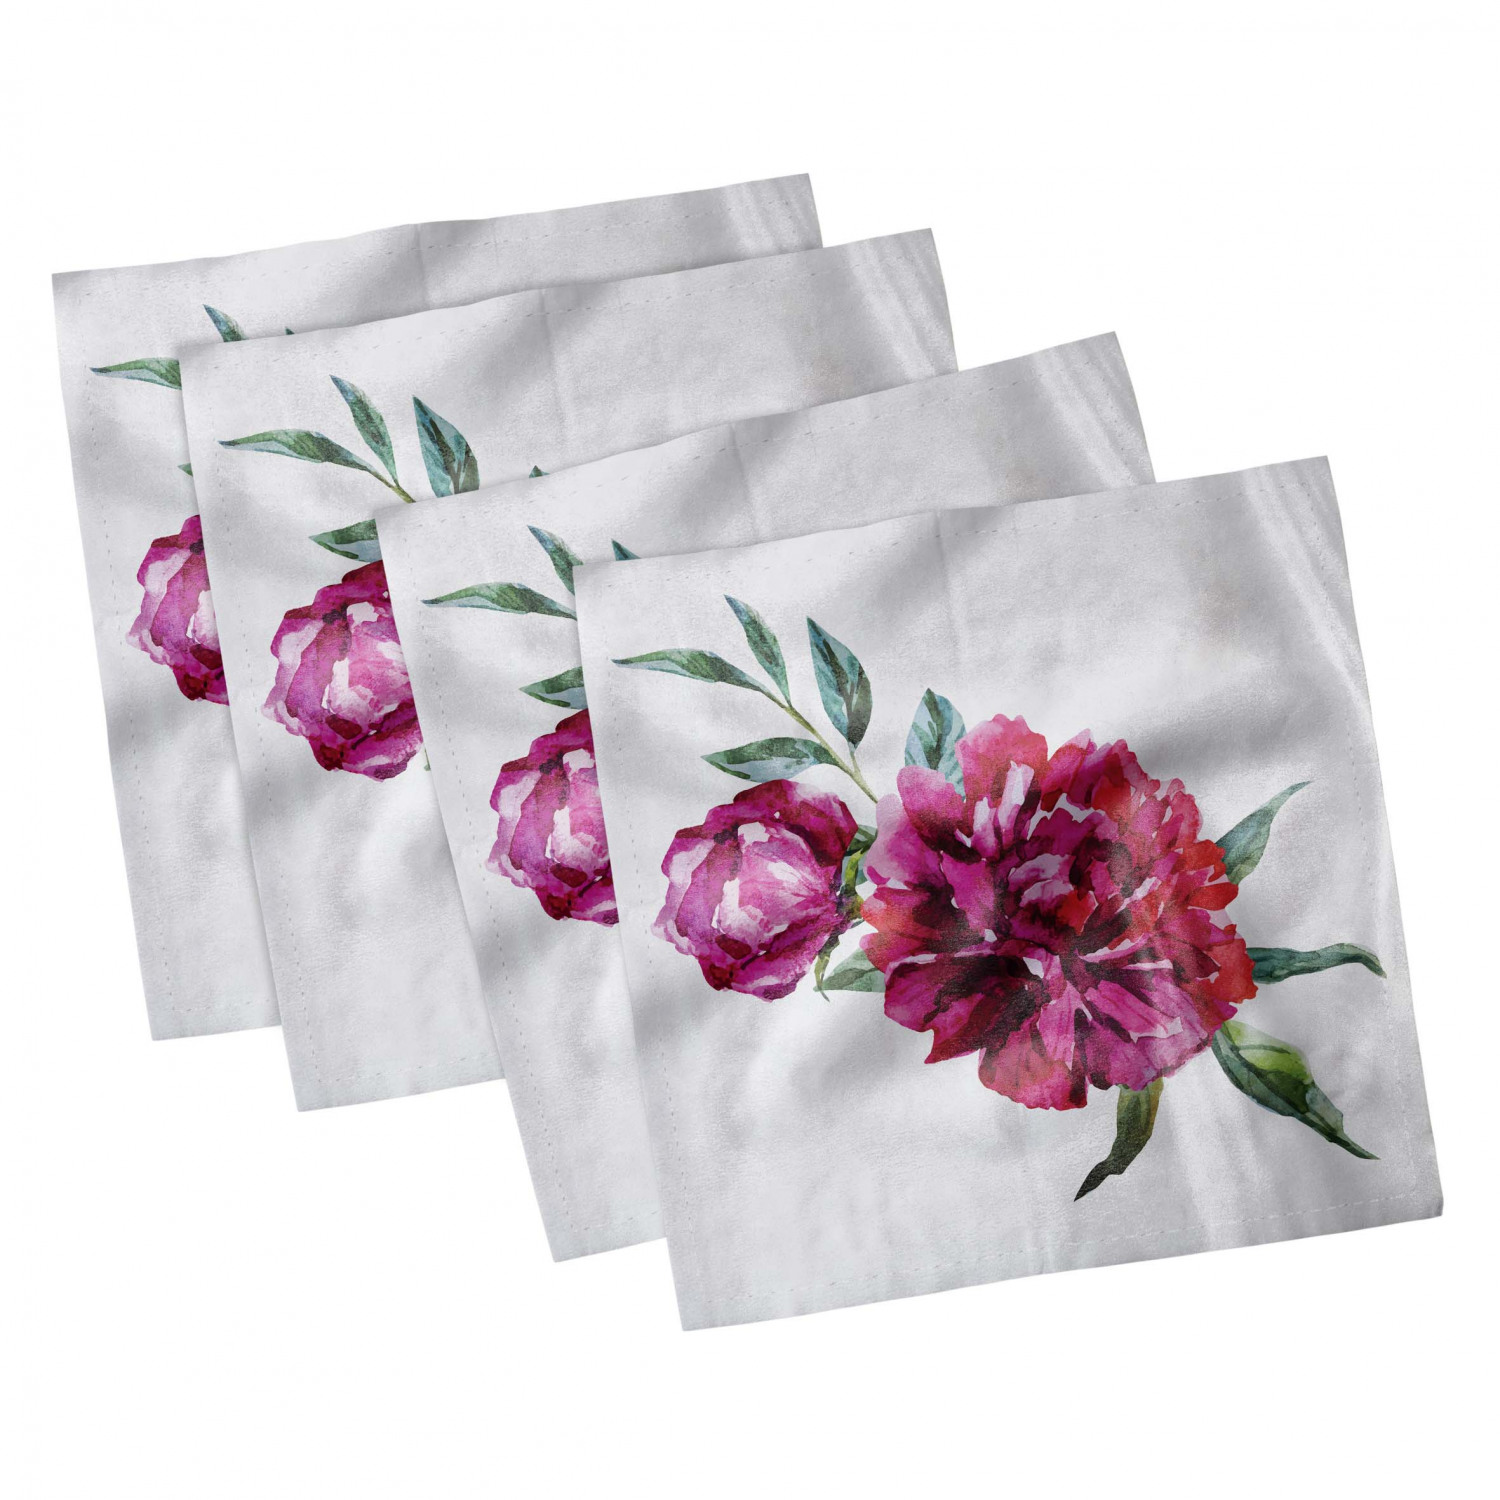 thumbnail 85 - Ambesonne-Leaves-Forest-Decorative-Satin-Napkins-Set-of-4-Party-Dinner-Fabric